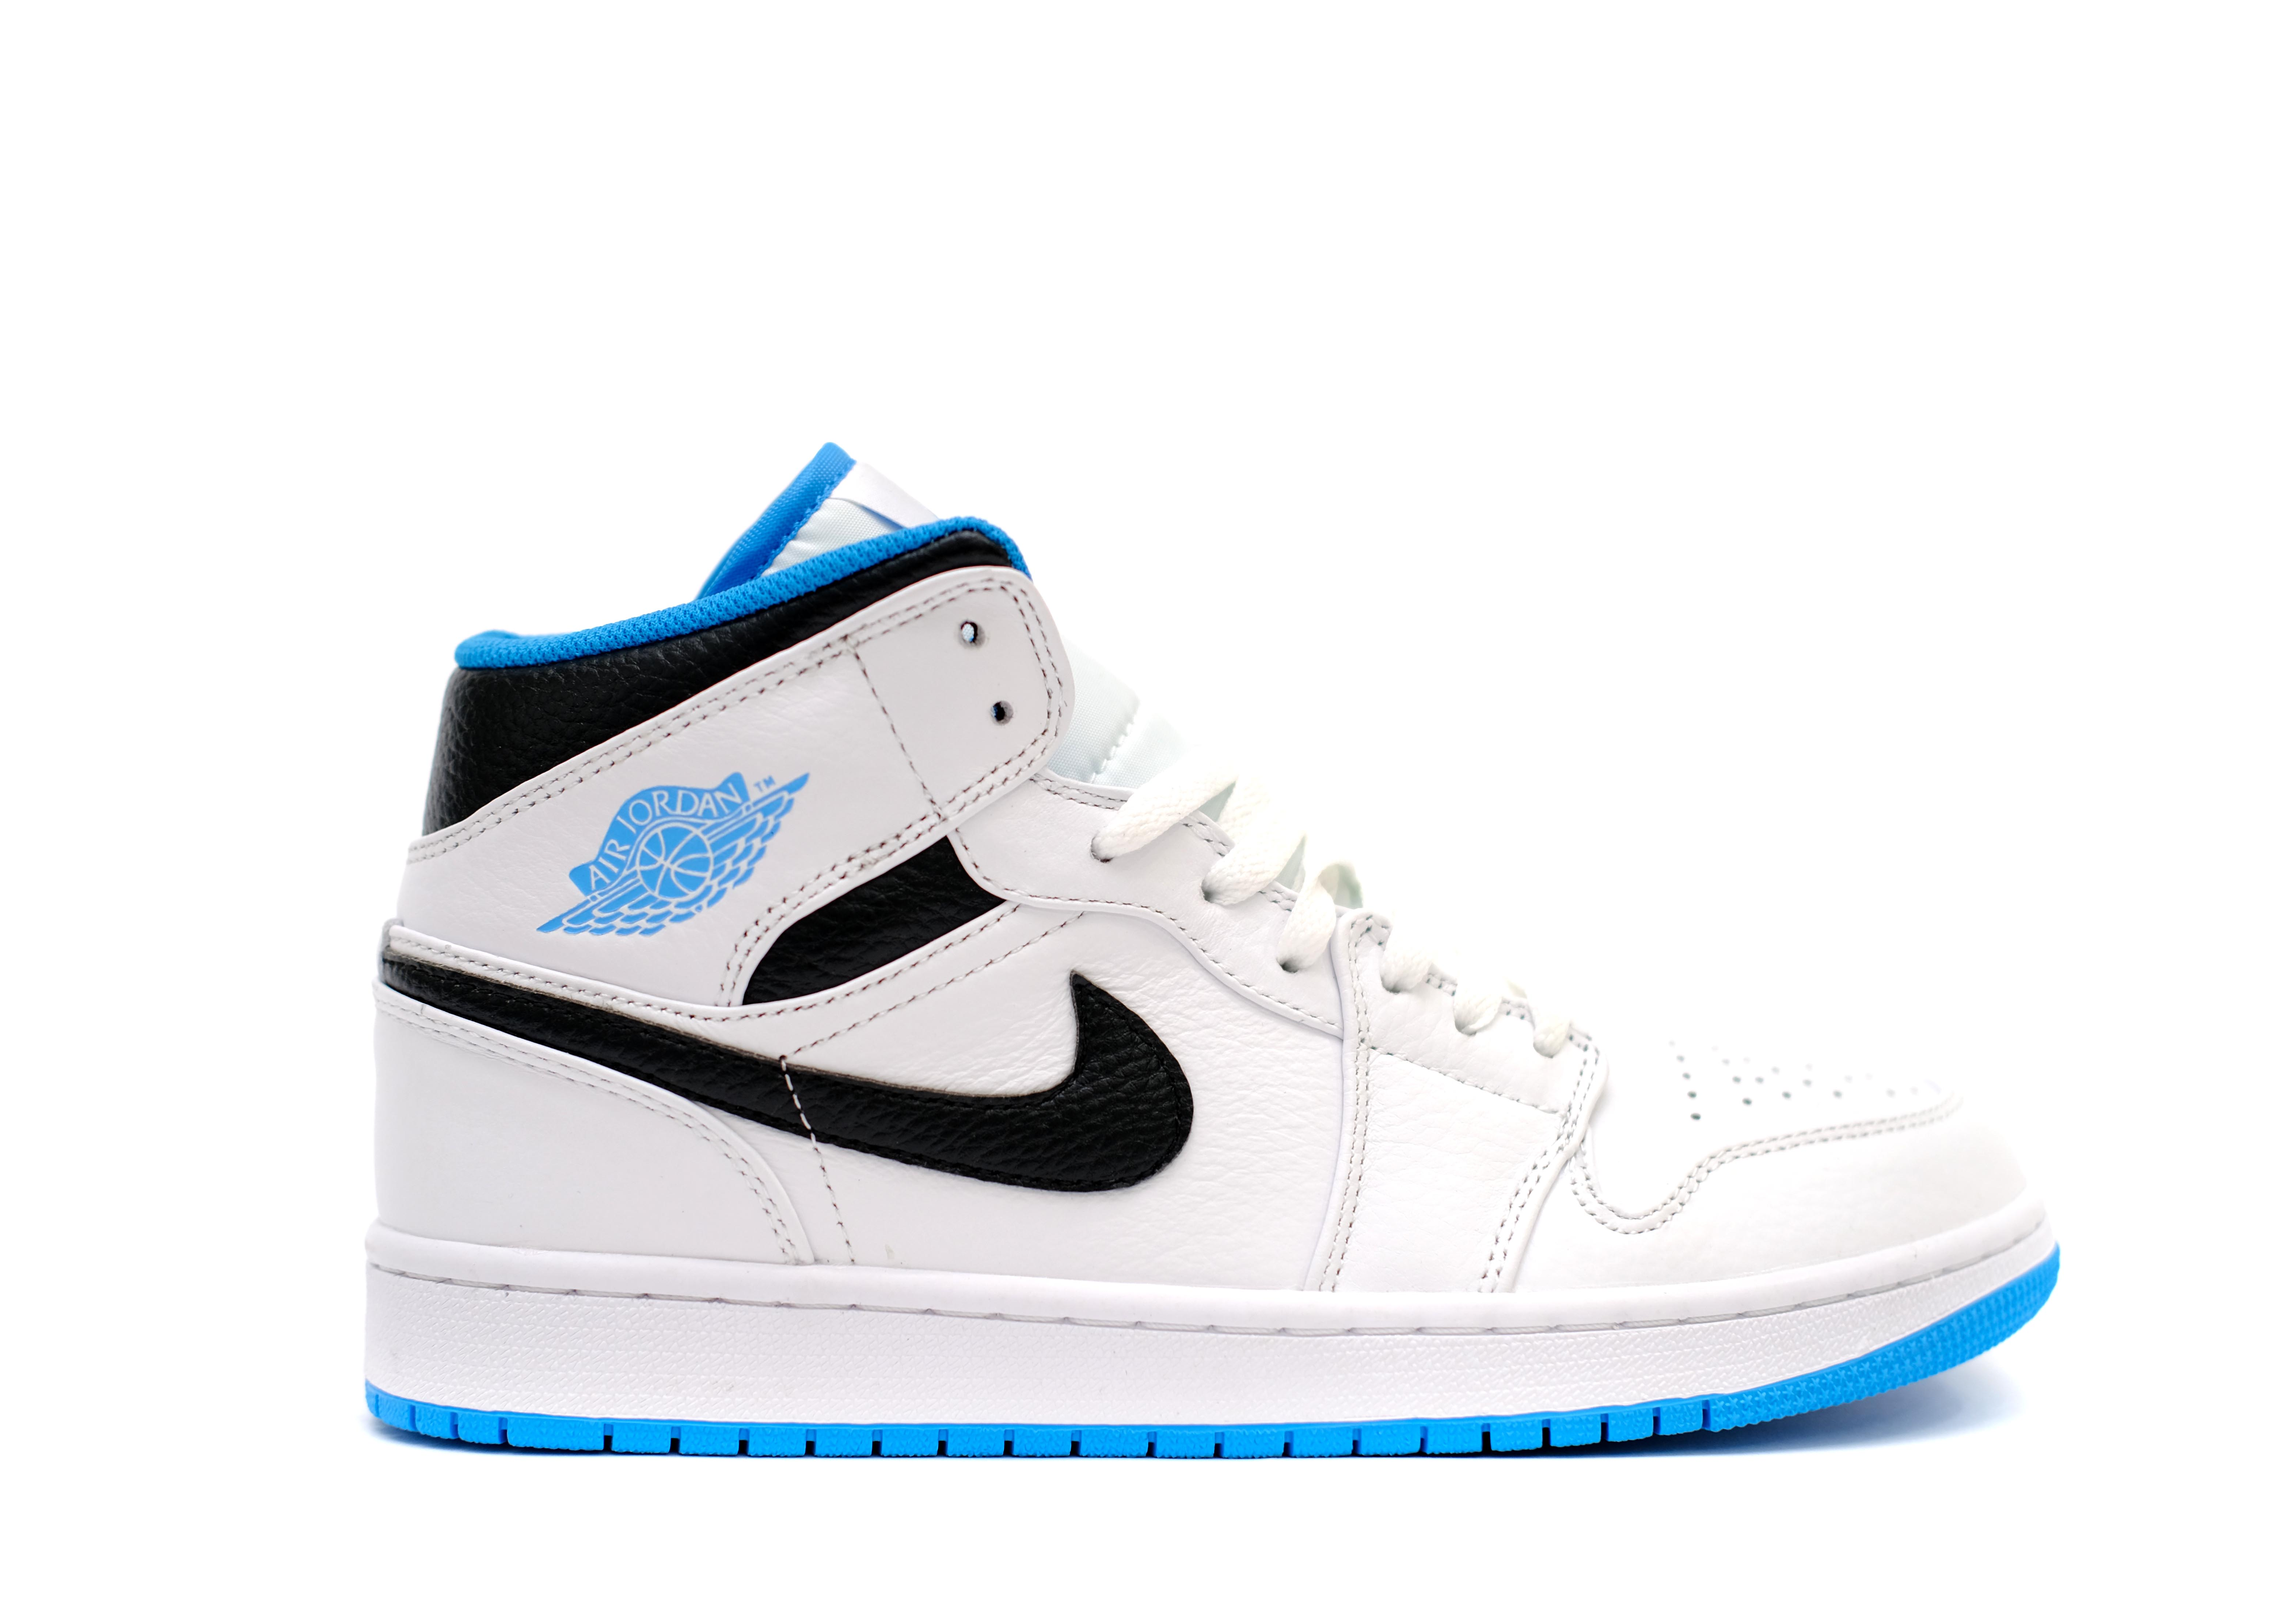 Air Jordan 1 Mid Laser Blue